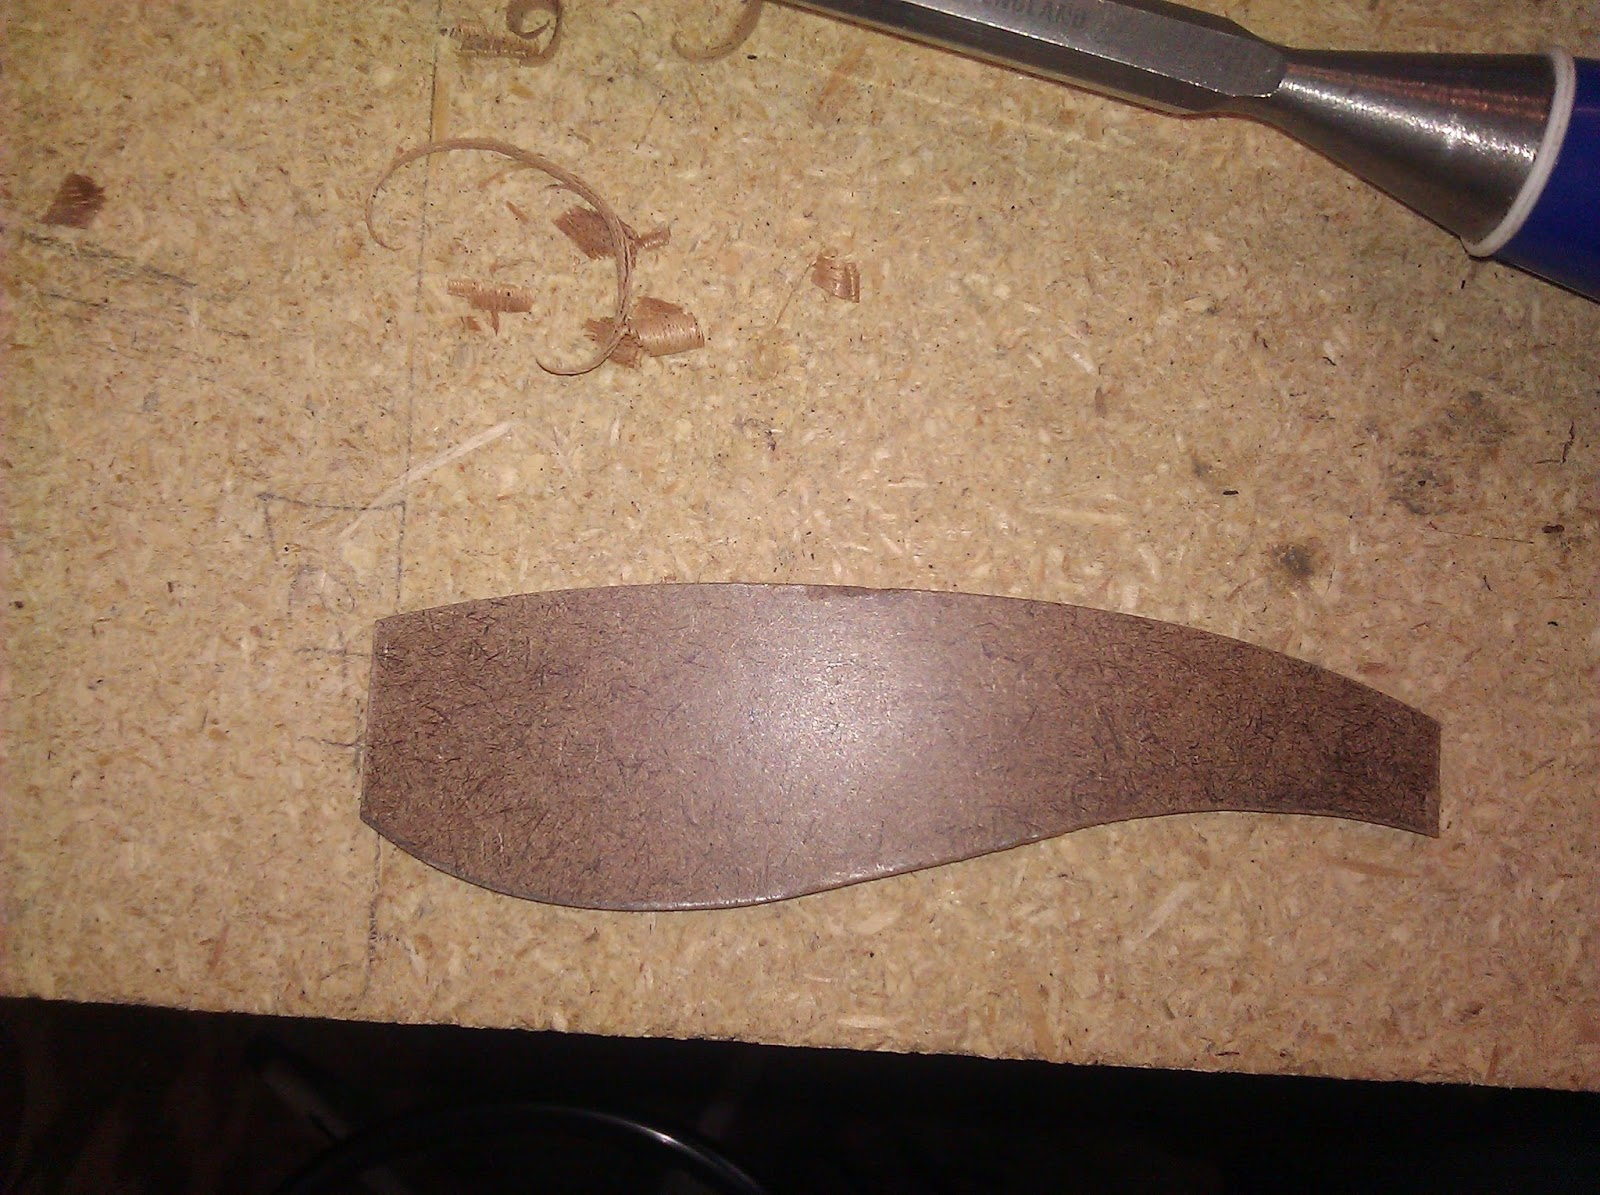 The wood knack shop made chip carving knife with mahogany